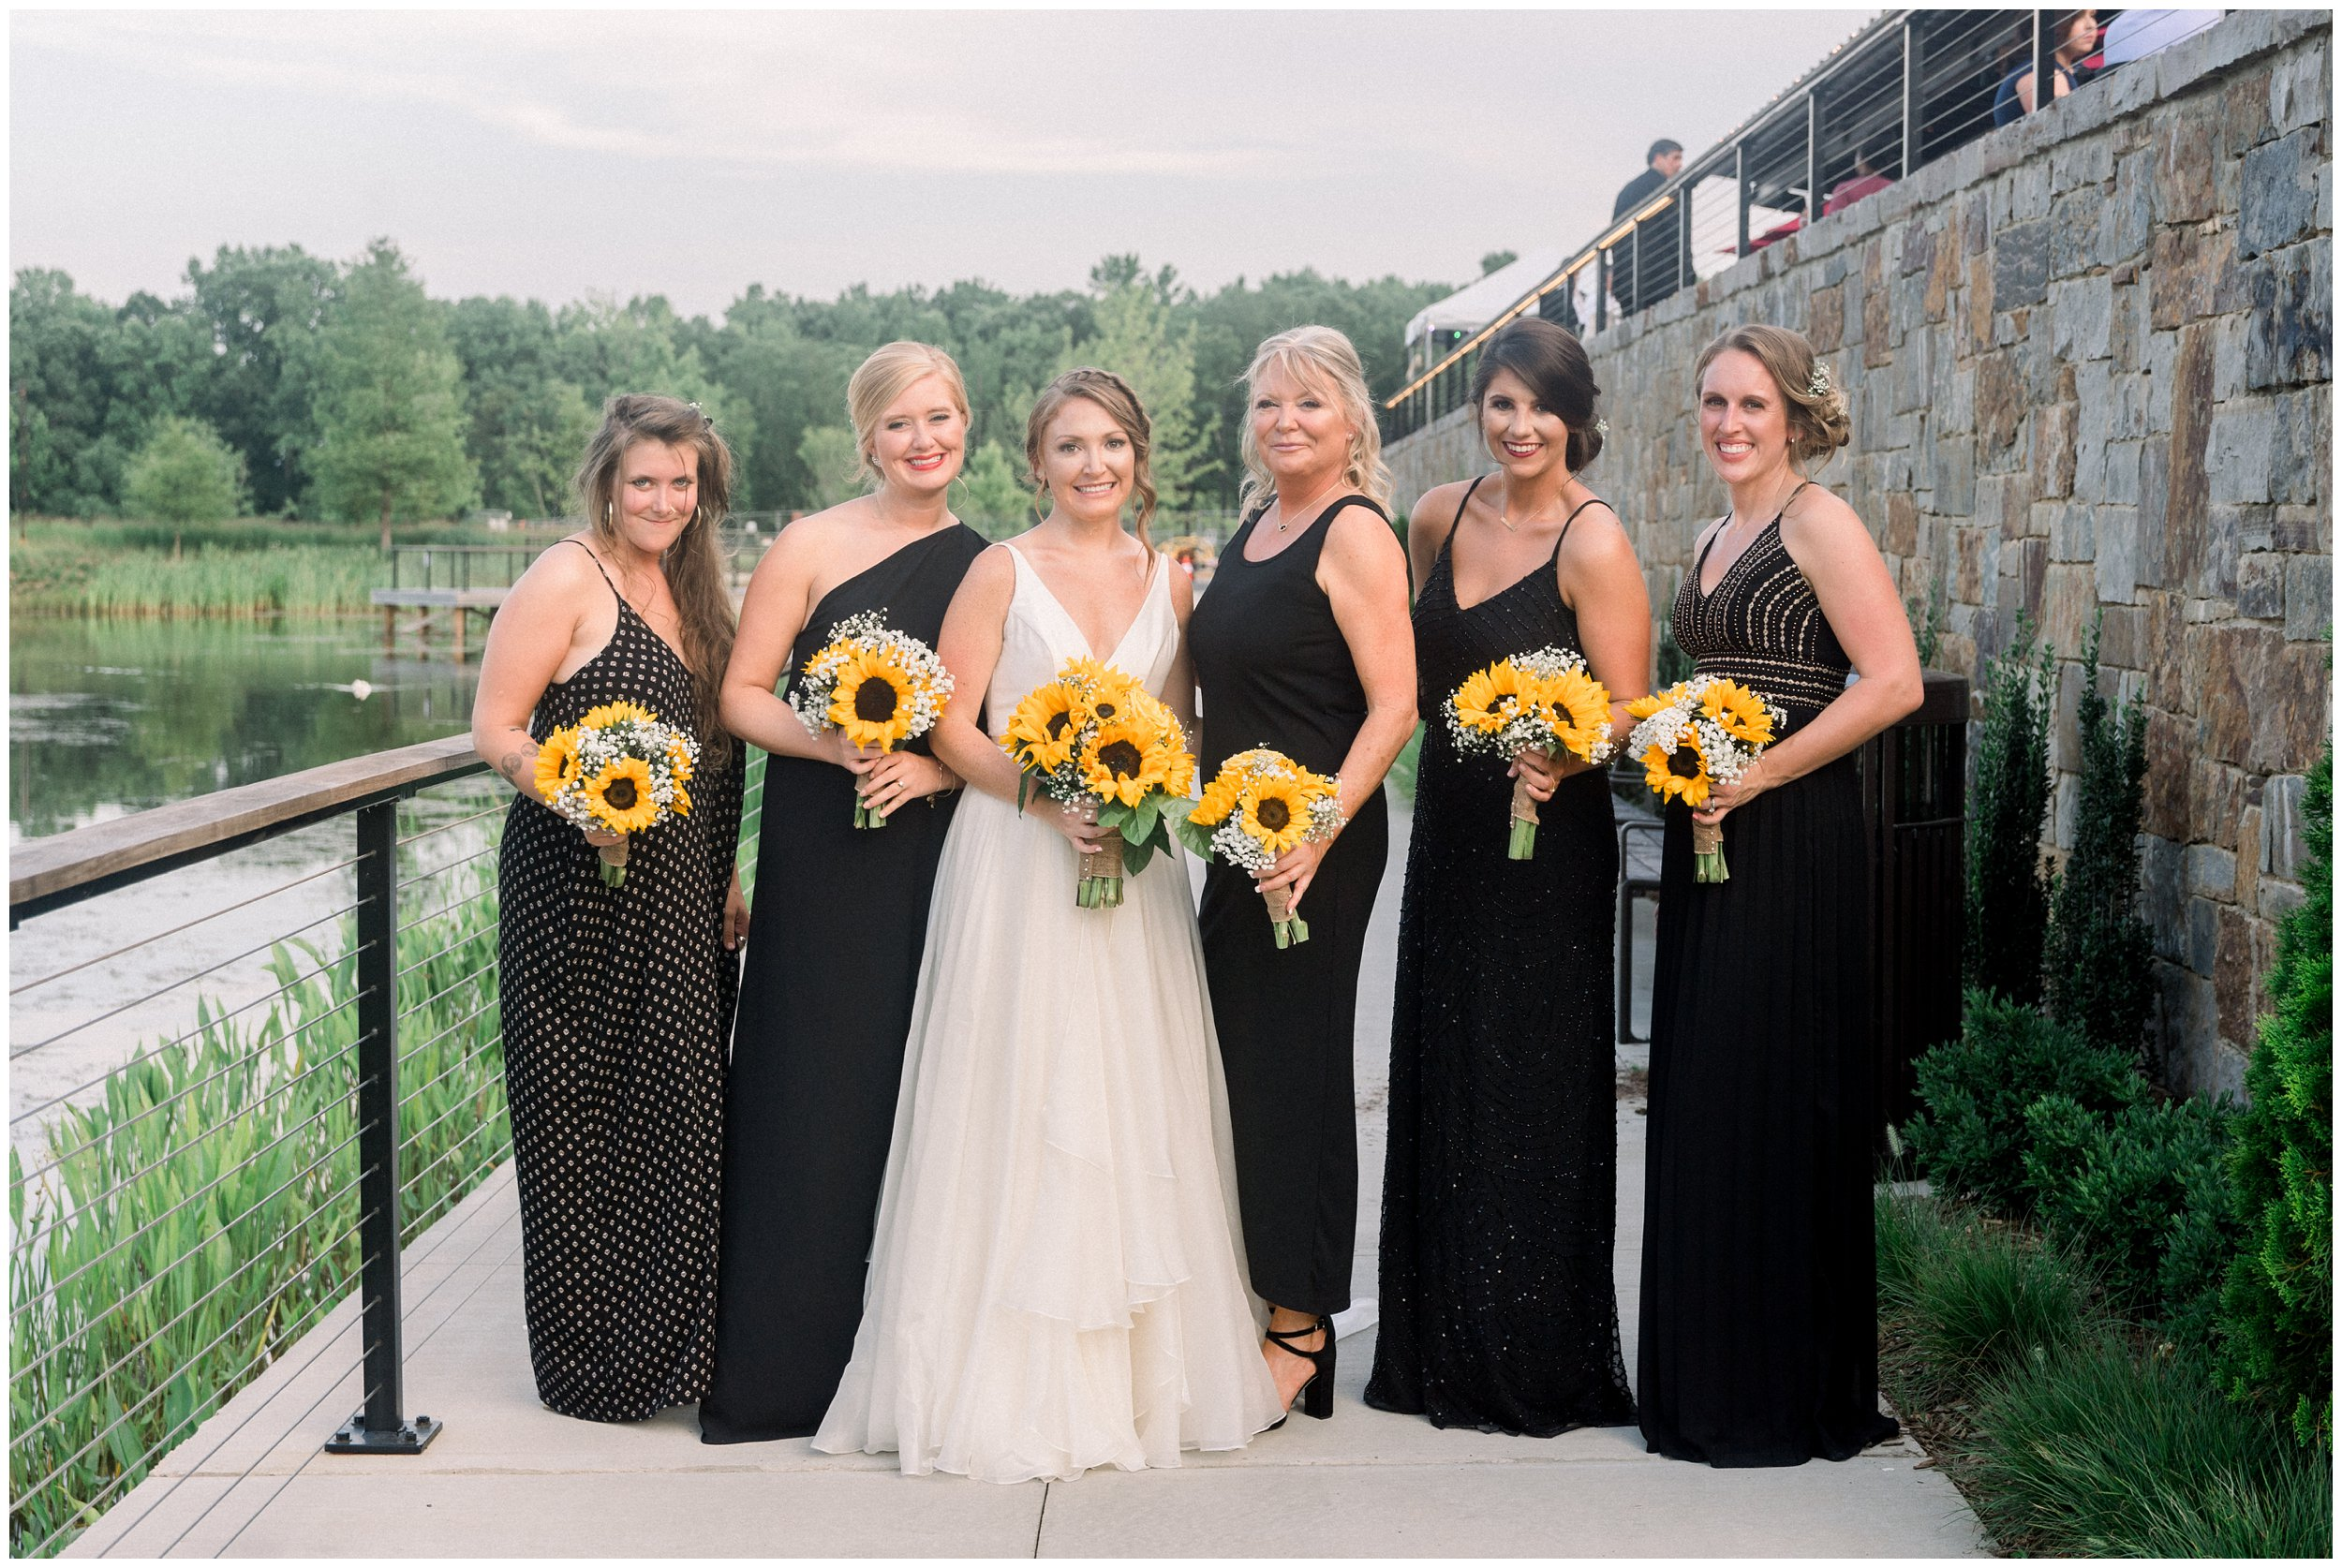 Bridal Party with sunflower bouquets